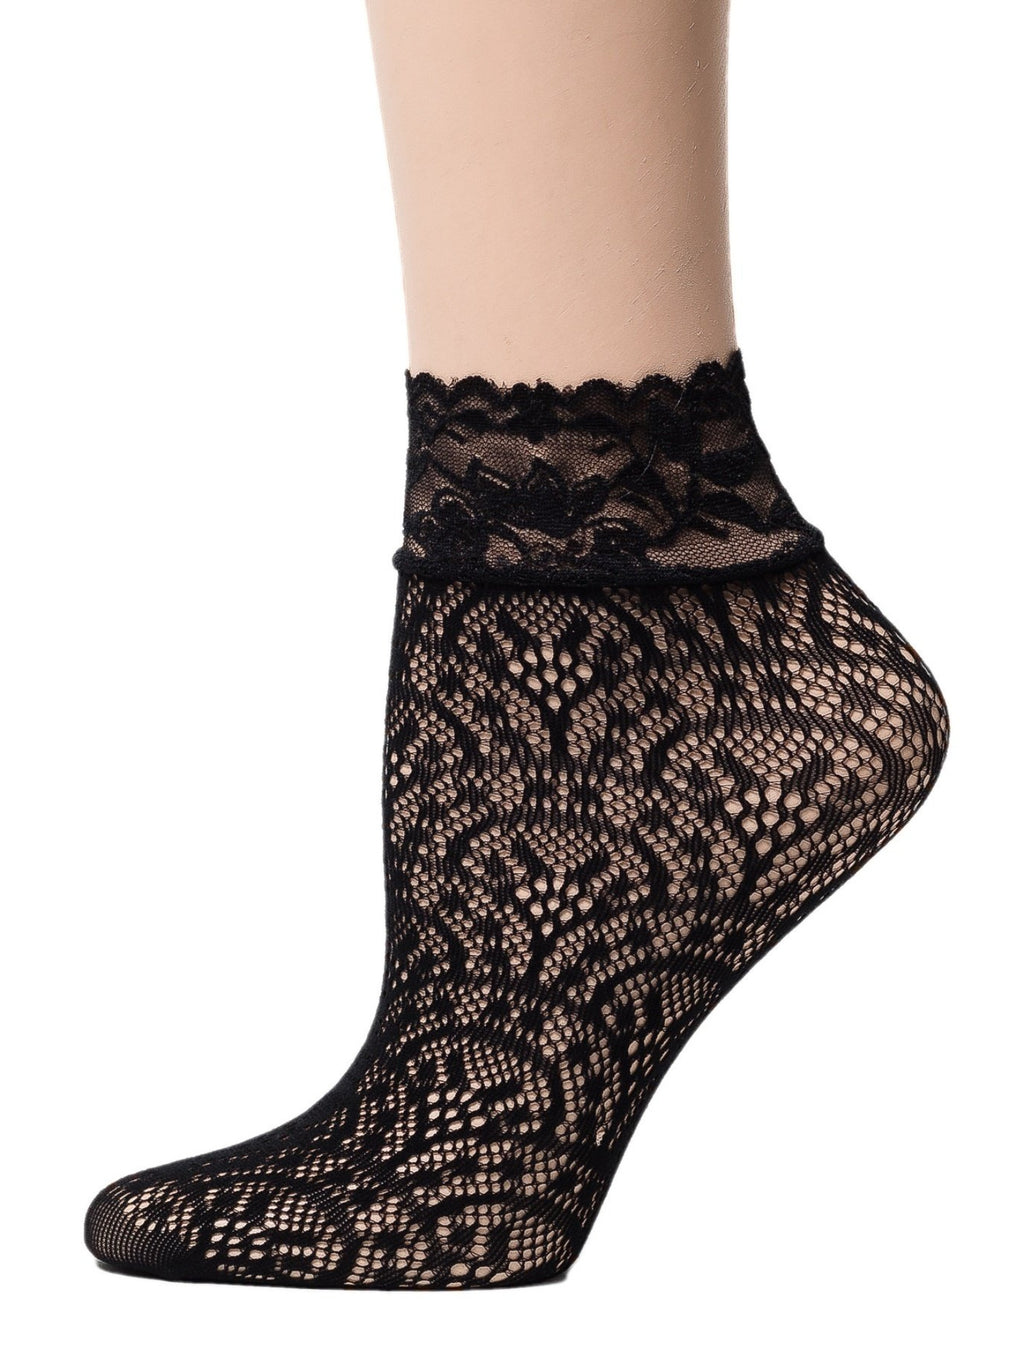 Tornado Black Mesh Socks - Global Trendz Fashion®